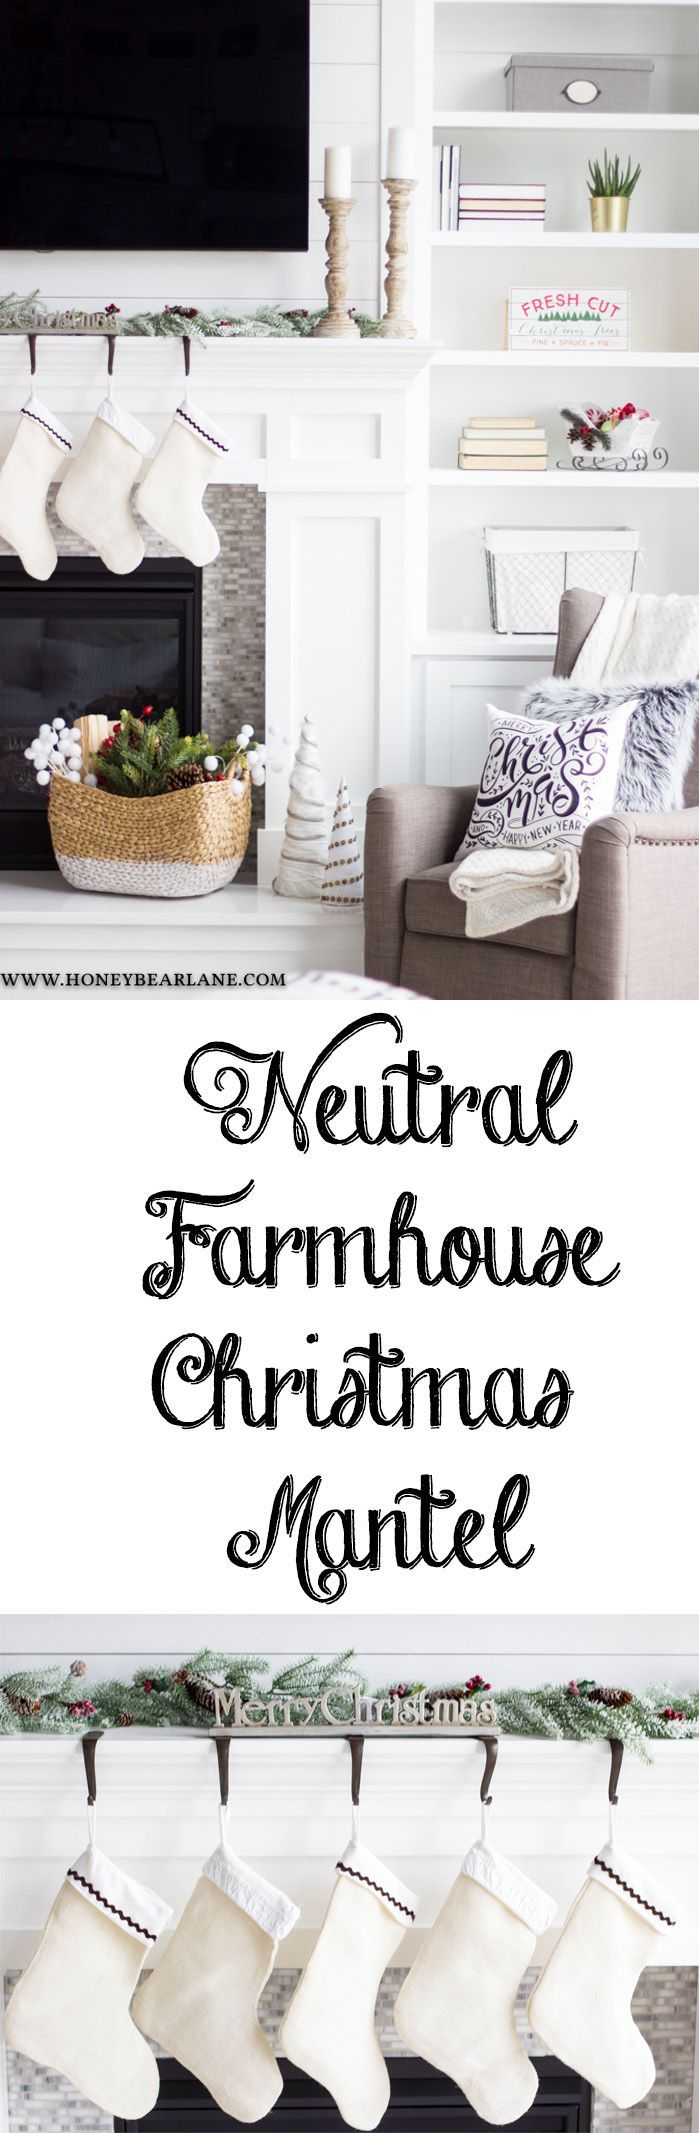 This year I wanted a more farmhouse Christmas mantel and I achieve the look with a few simple and inexpensive purchases from Hobby Lobby. @hobbylobby #hobbylobbyfinds #ad #hobbylobbyholiday